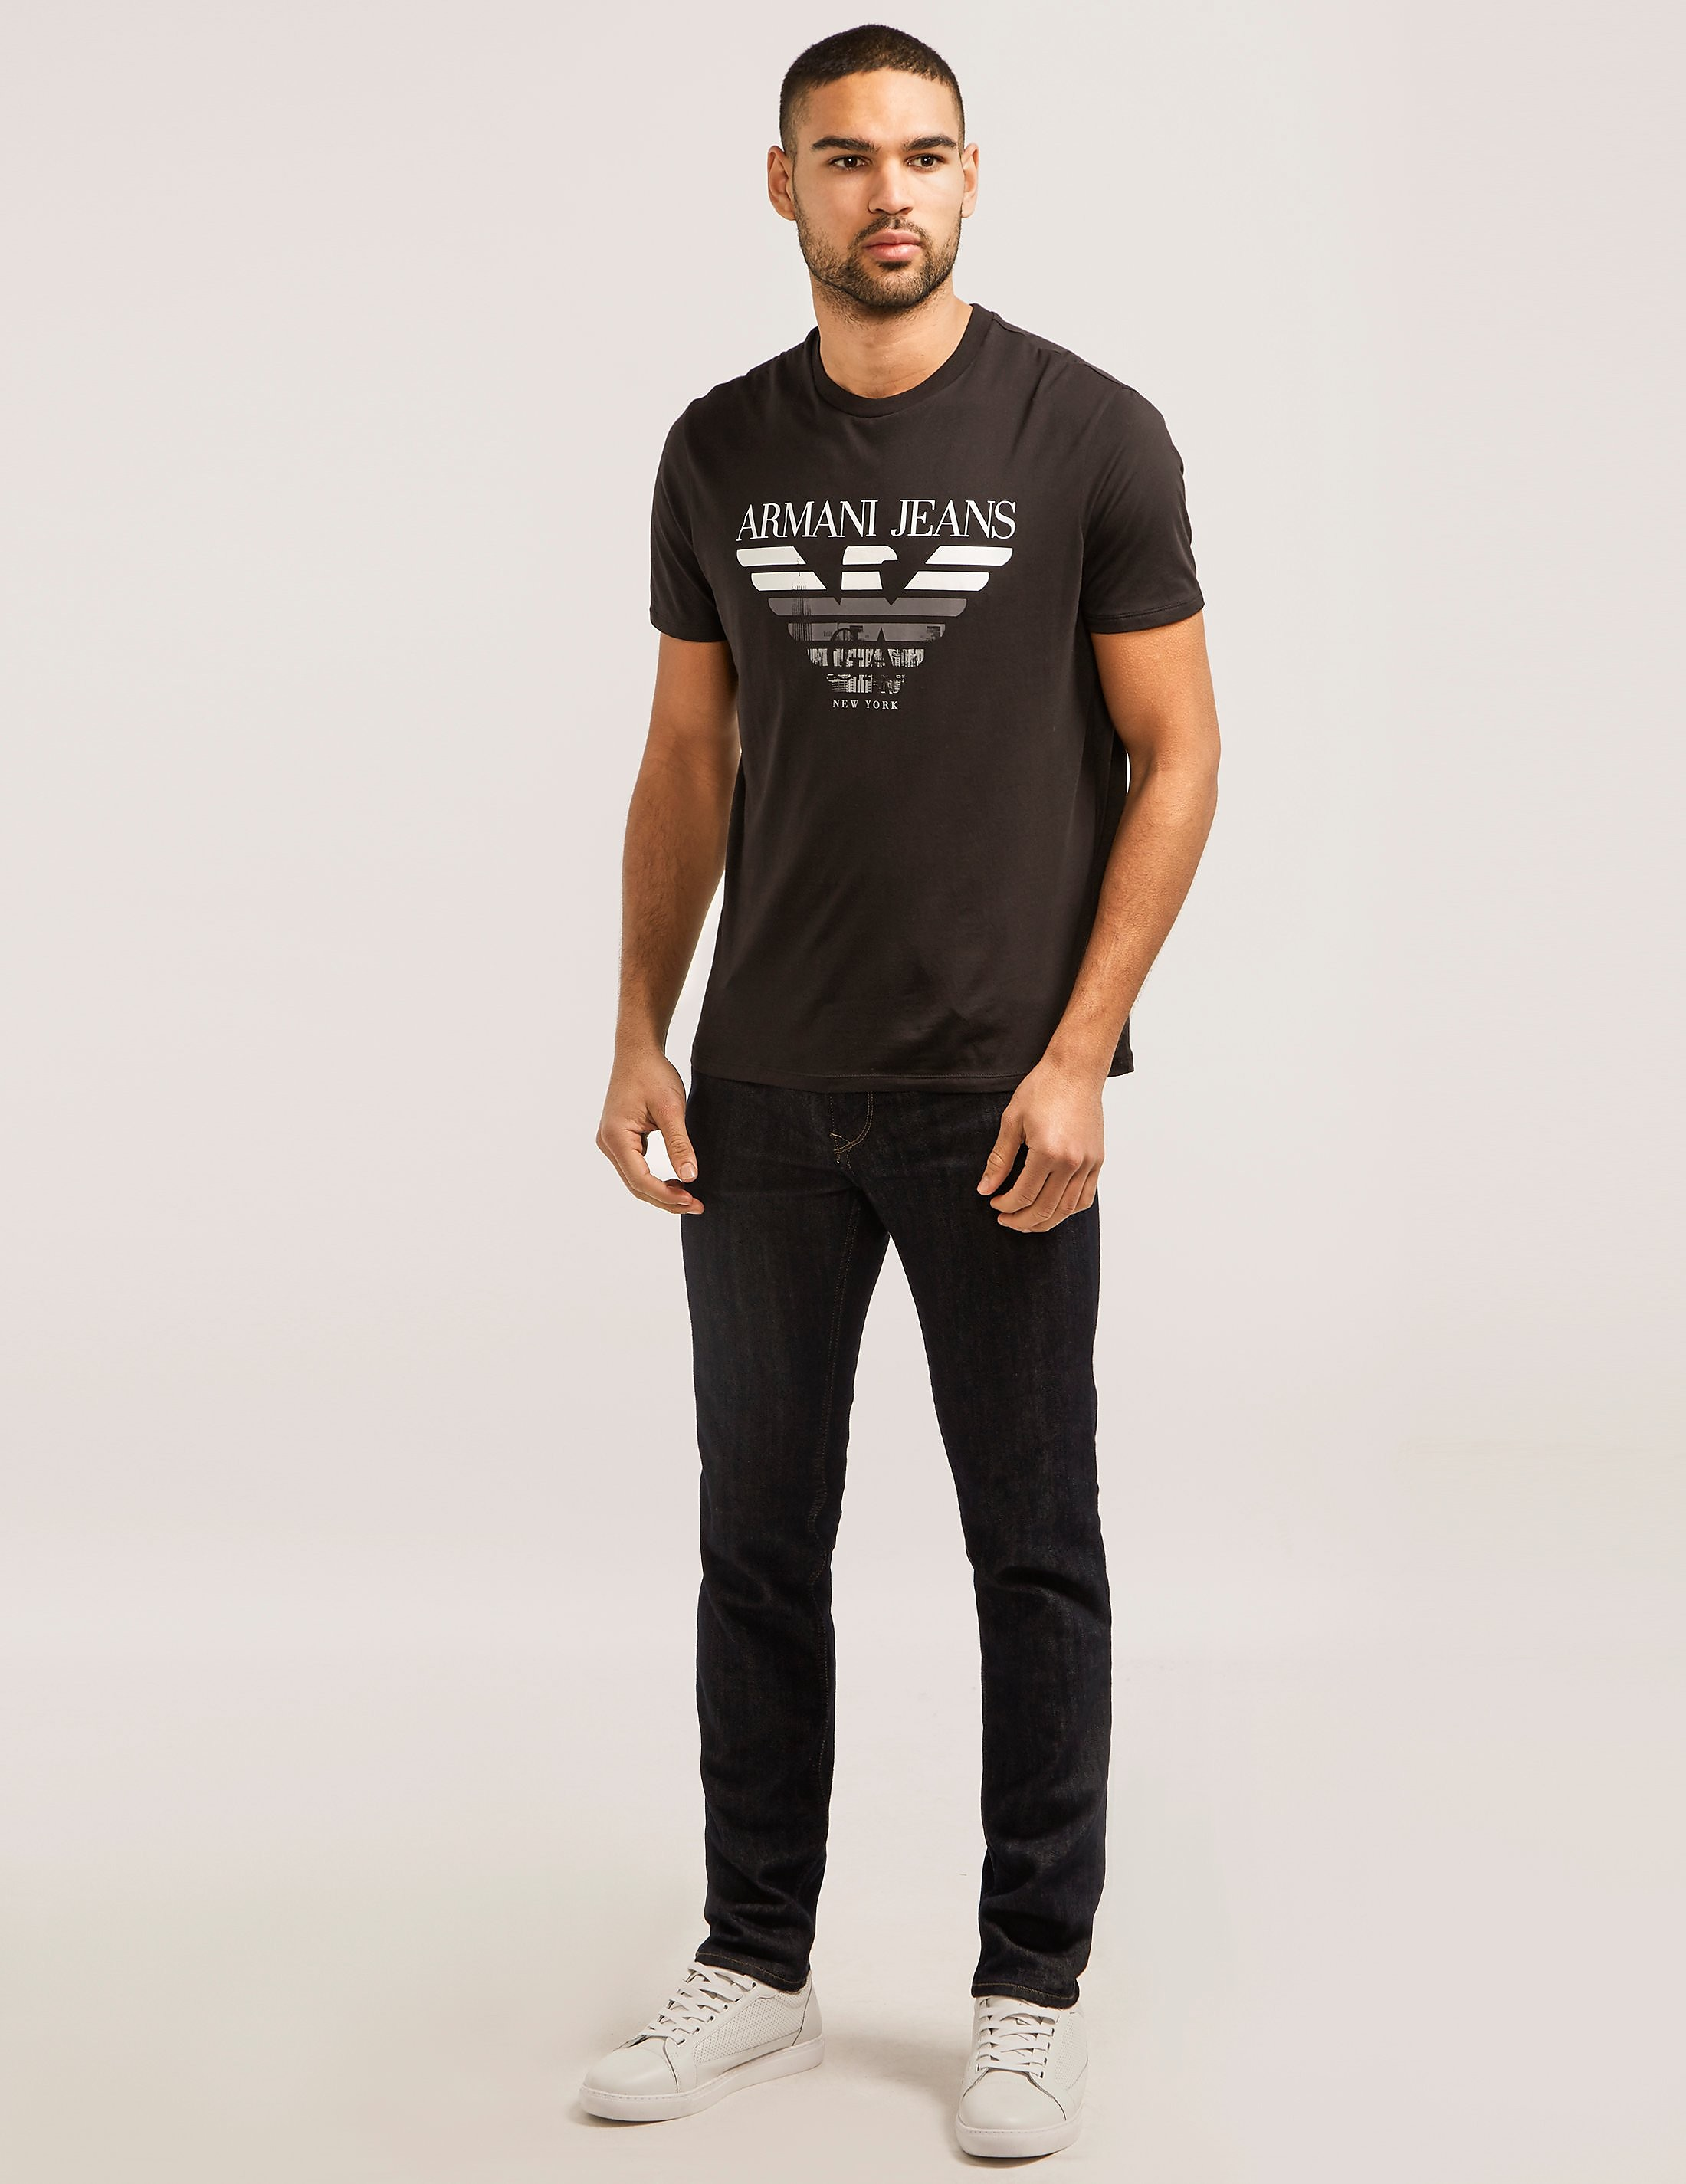 Armani Jeans City Print Short Sleeve T-Shirt